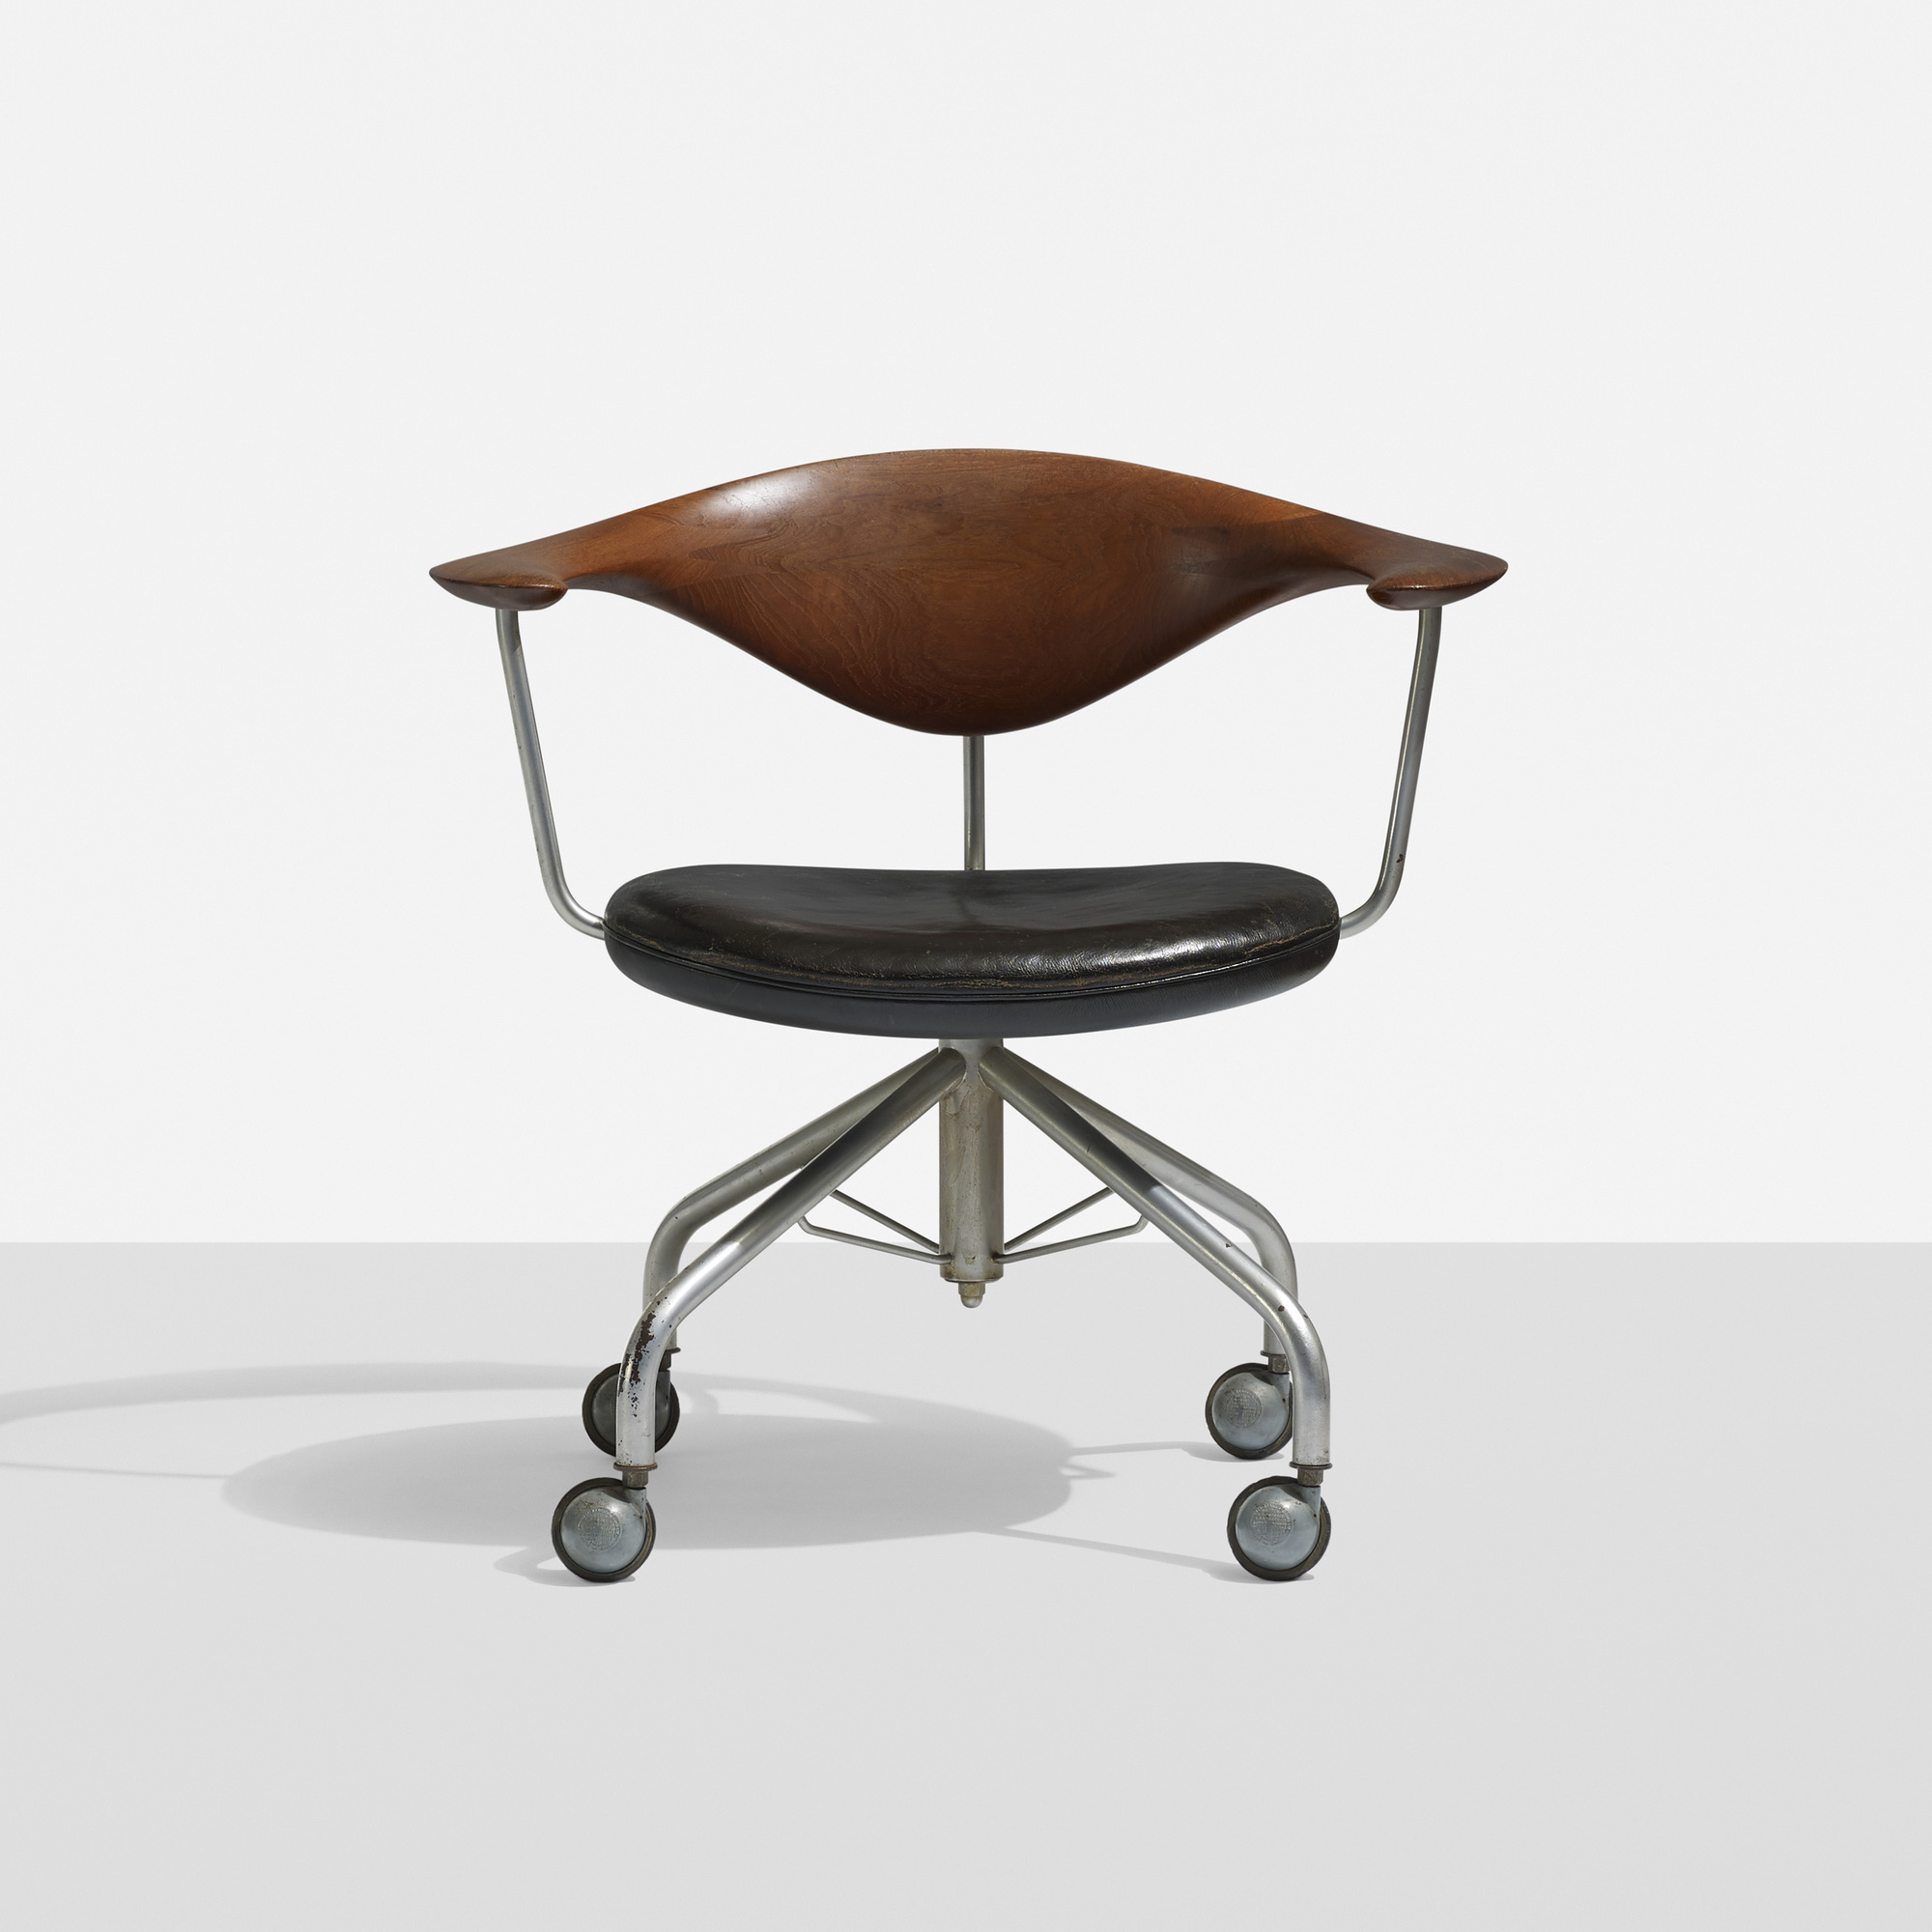 scandinavian office chairs. 191: Hans J. Wegner / Swivel Office Chair (1 Of 4) Scandinavian Chairs E